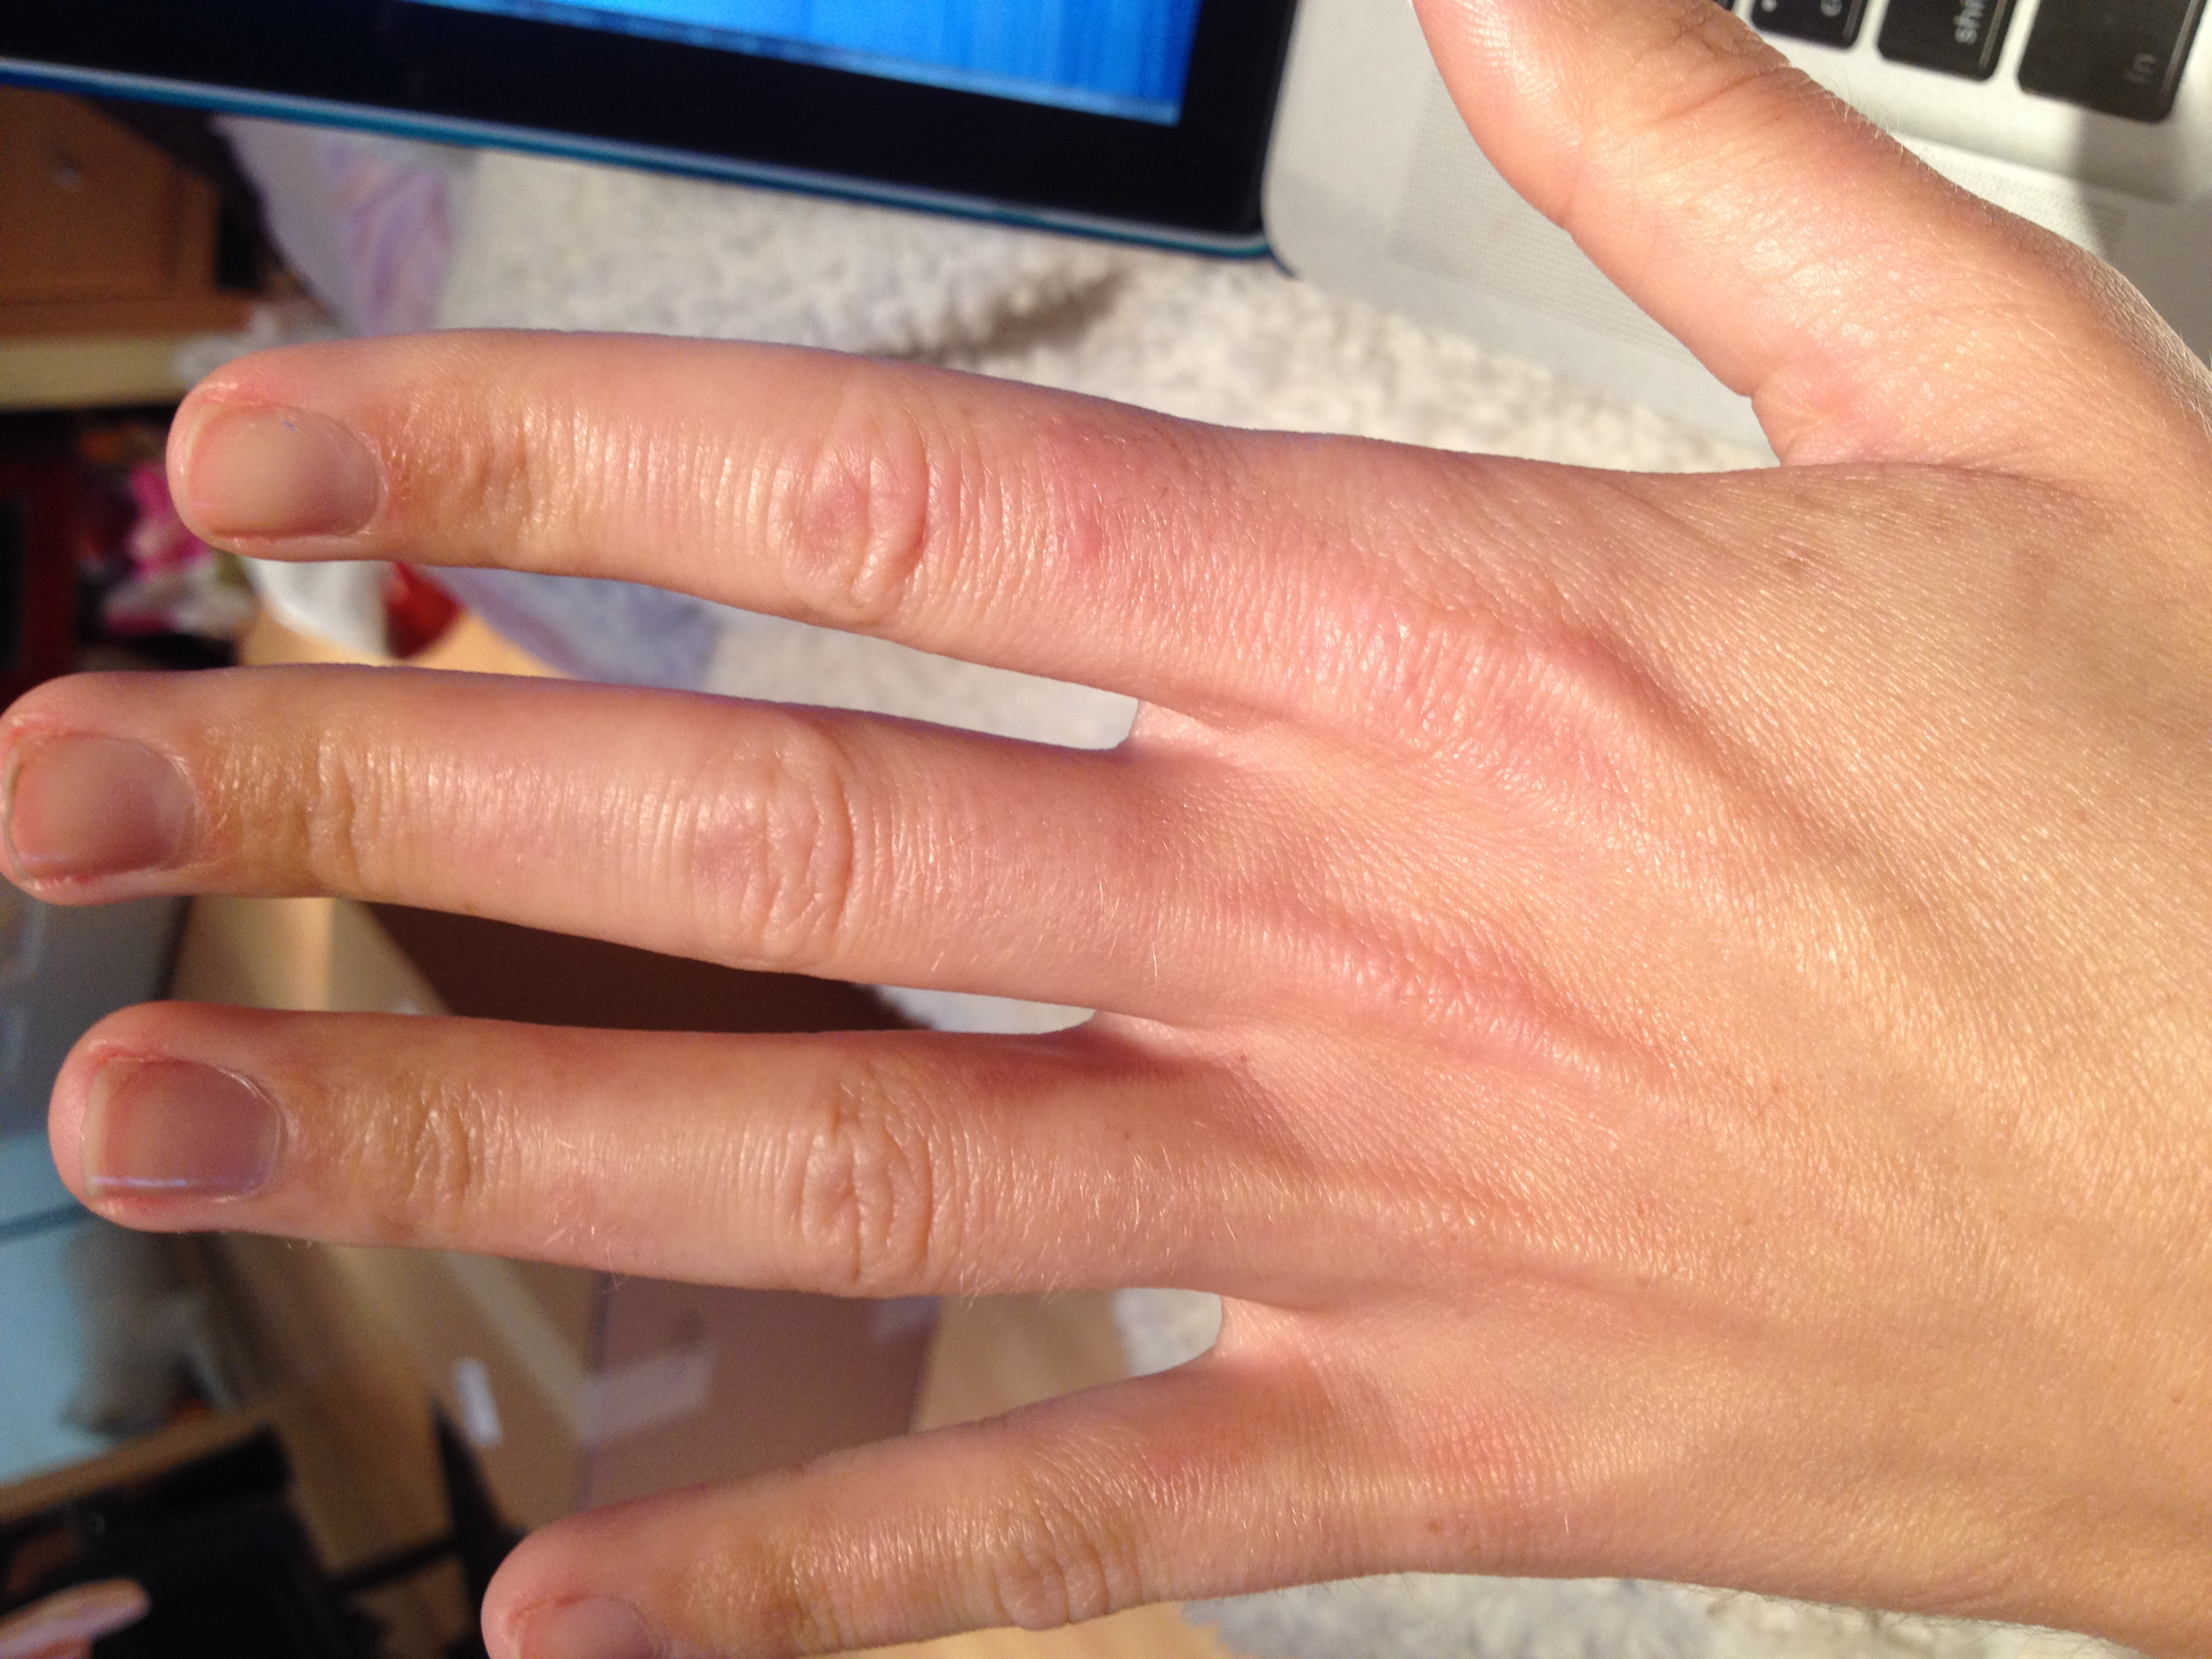 I have had a rash on the back of my hand (mostly my right ...  I have had a ra...